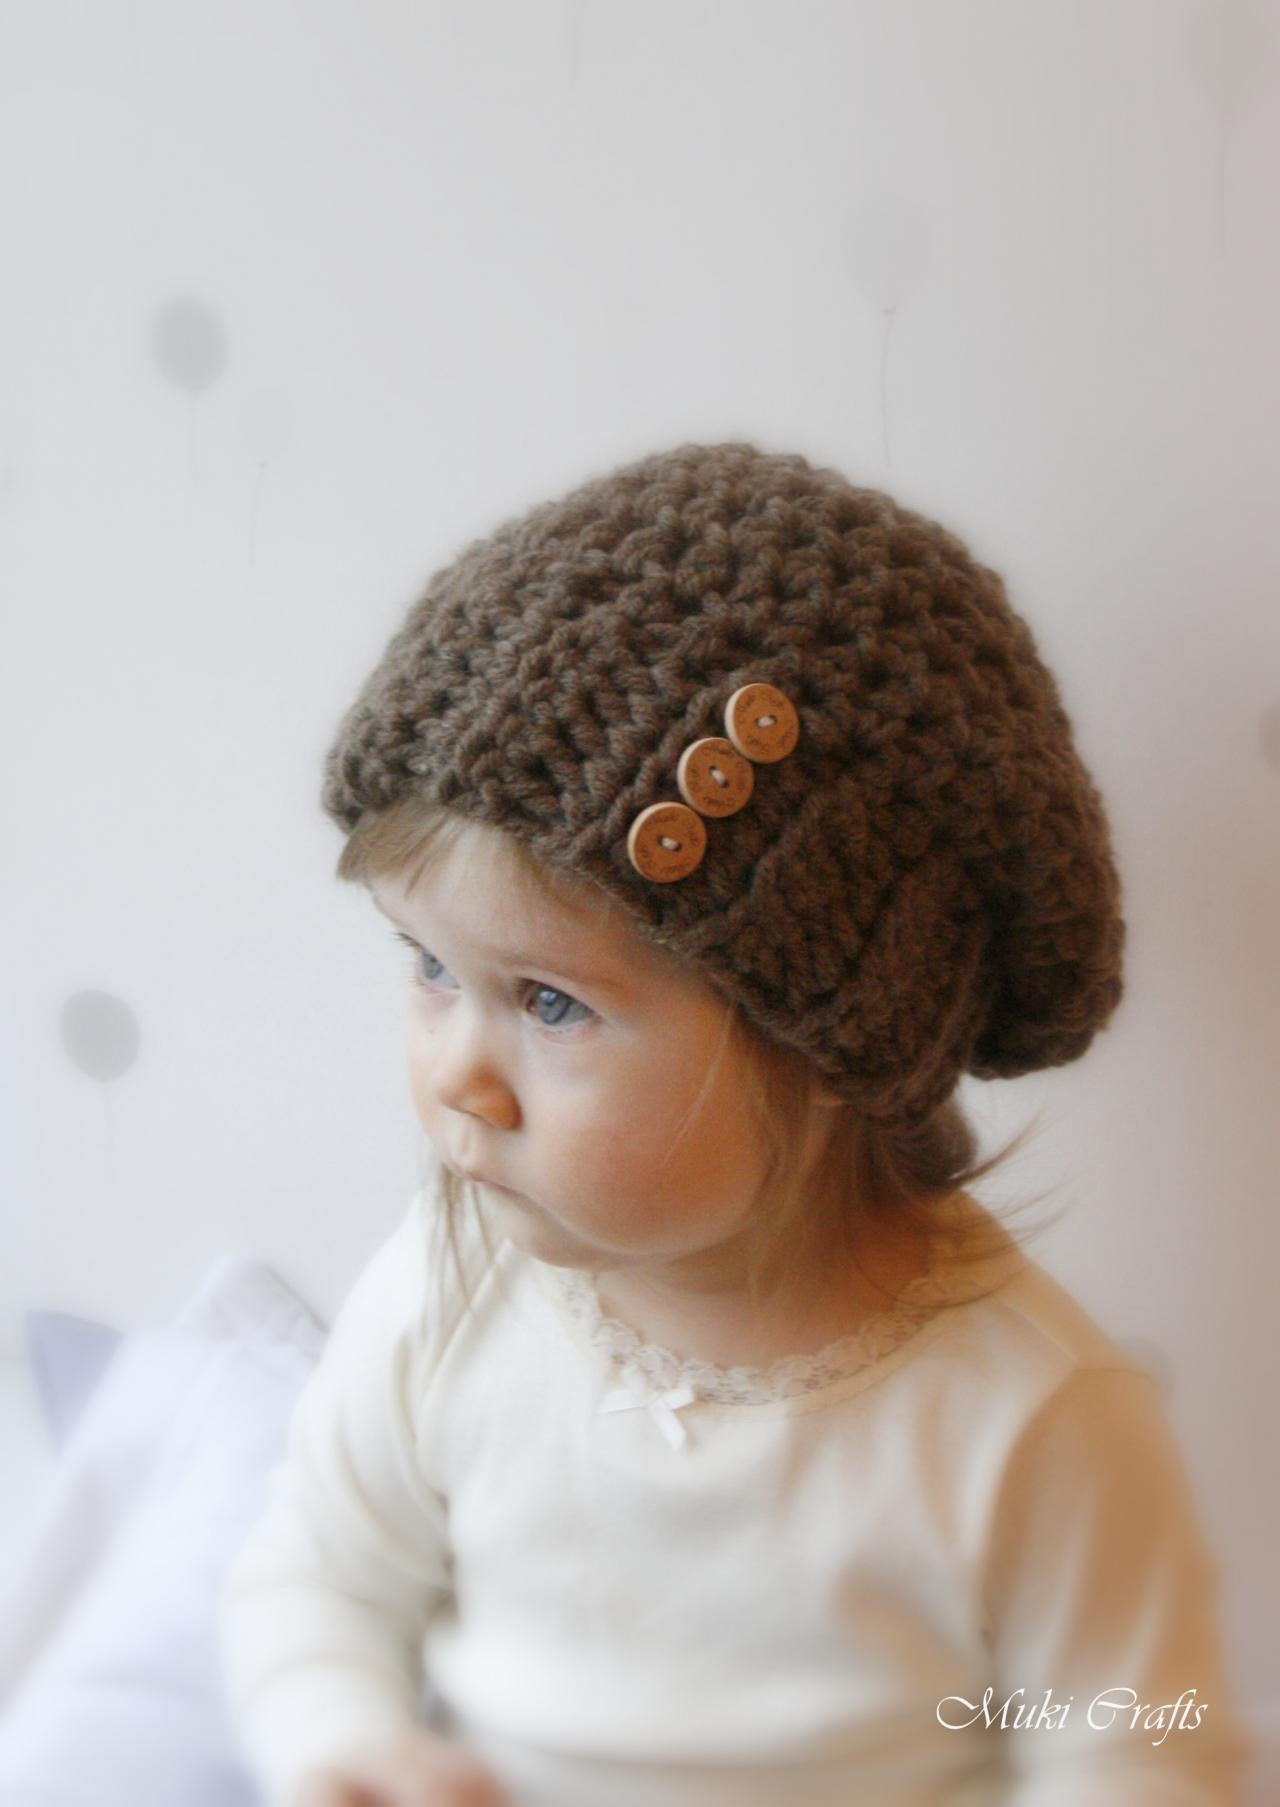 Crochet Slouchy Hat Pattern For Child : CROCHET PATTERN Basic Slouchy Hat Addison (baby, Todddler ...